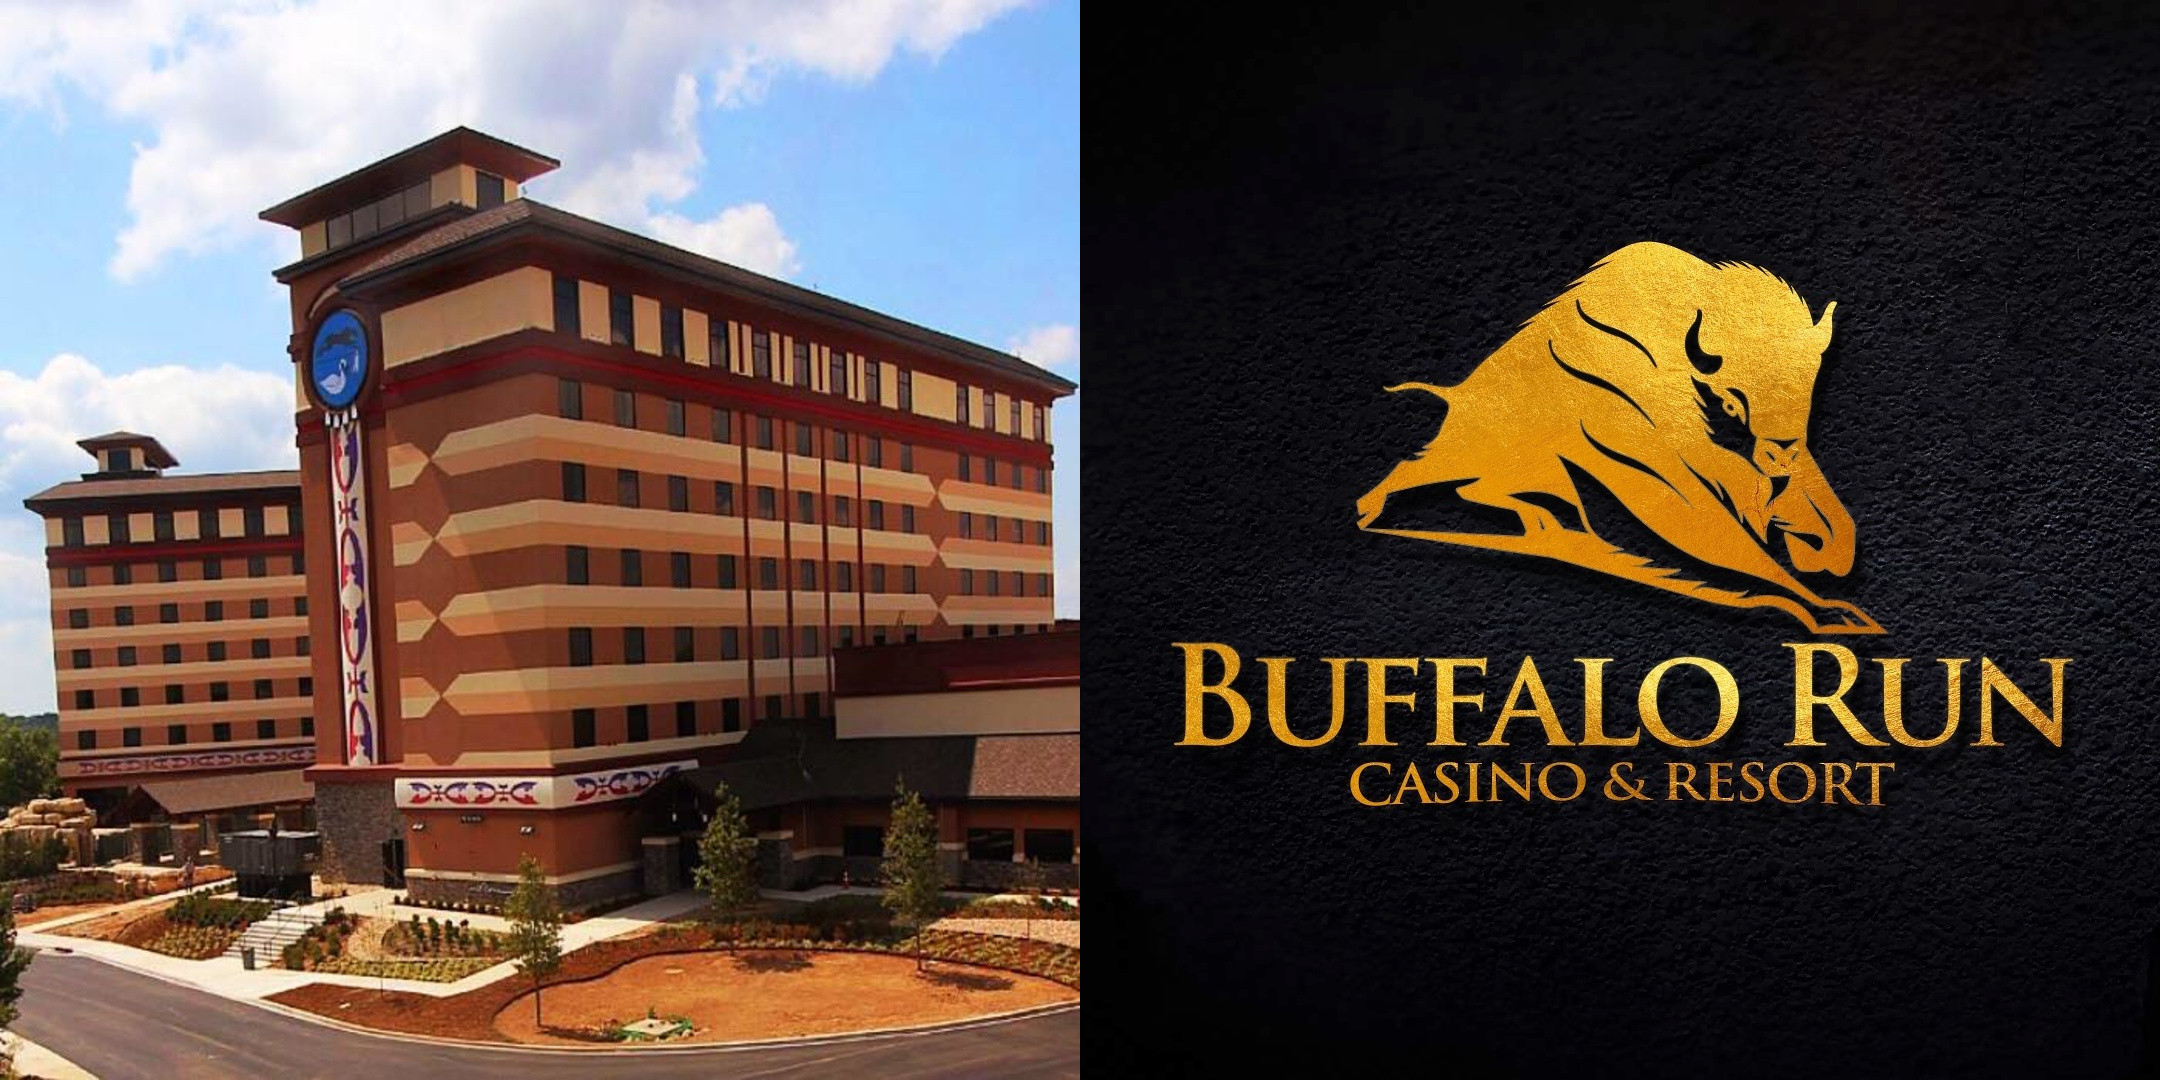 Buffalo run casino concerts 2012 2 player games weebly